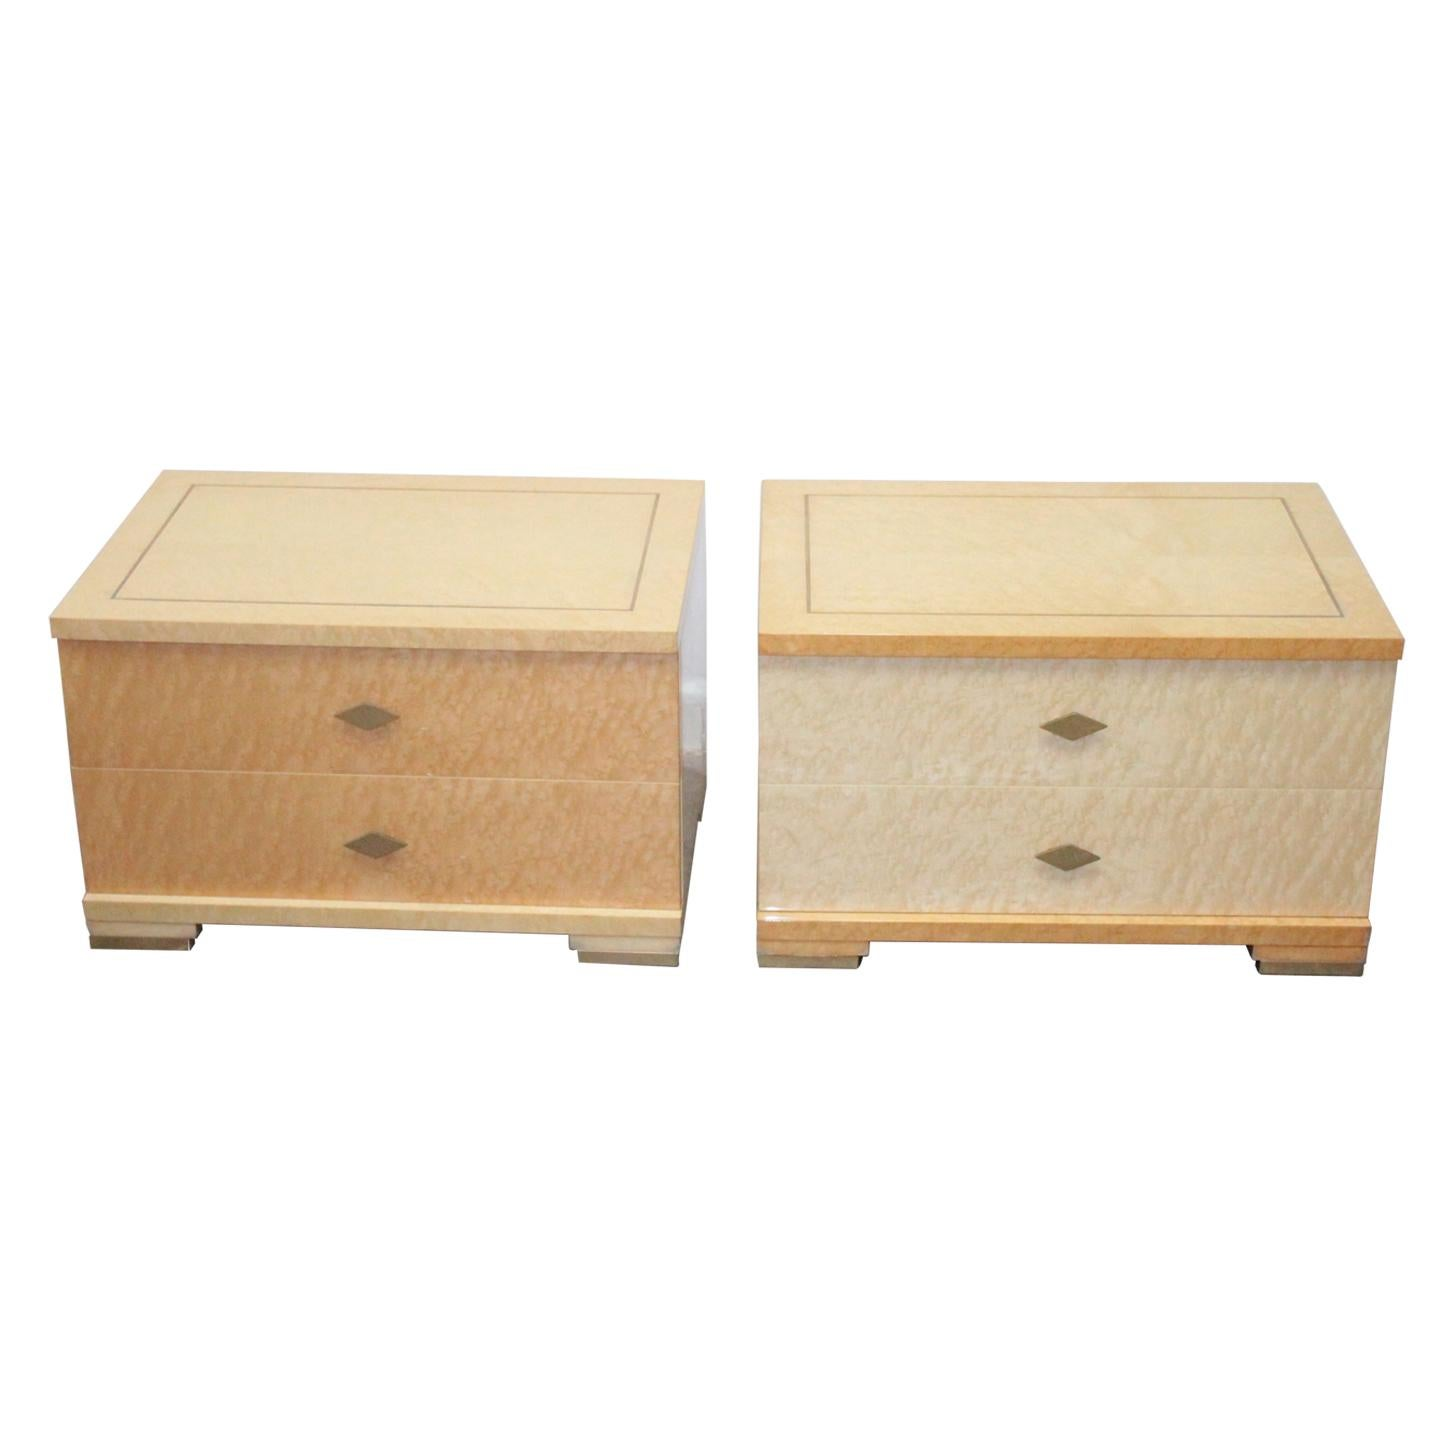 Italian Modernist Bedside Pair Maple Briar Wood 1980s Willy Rizzo Style